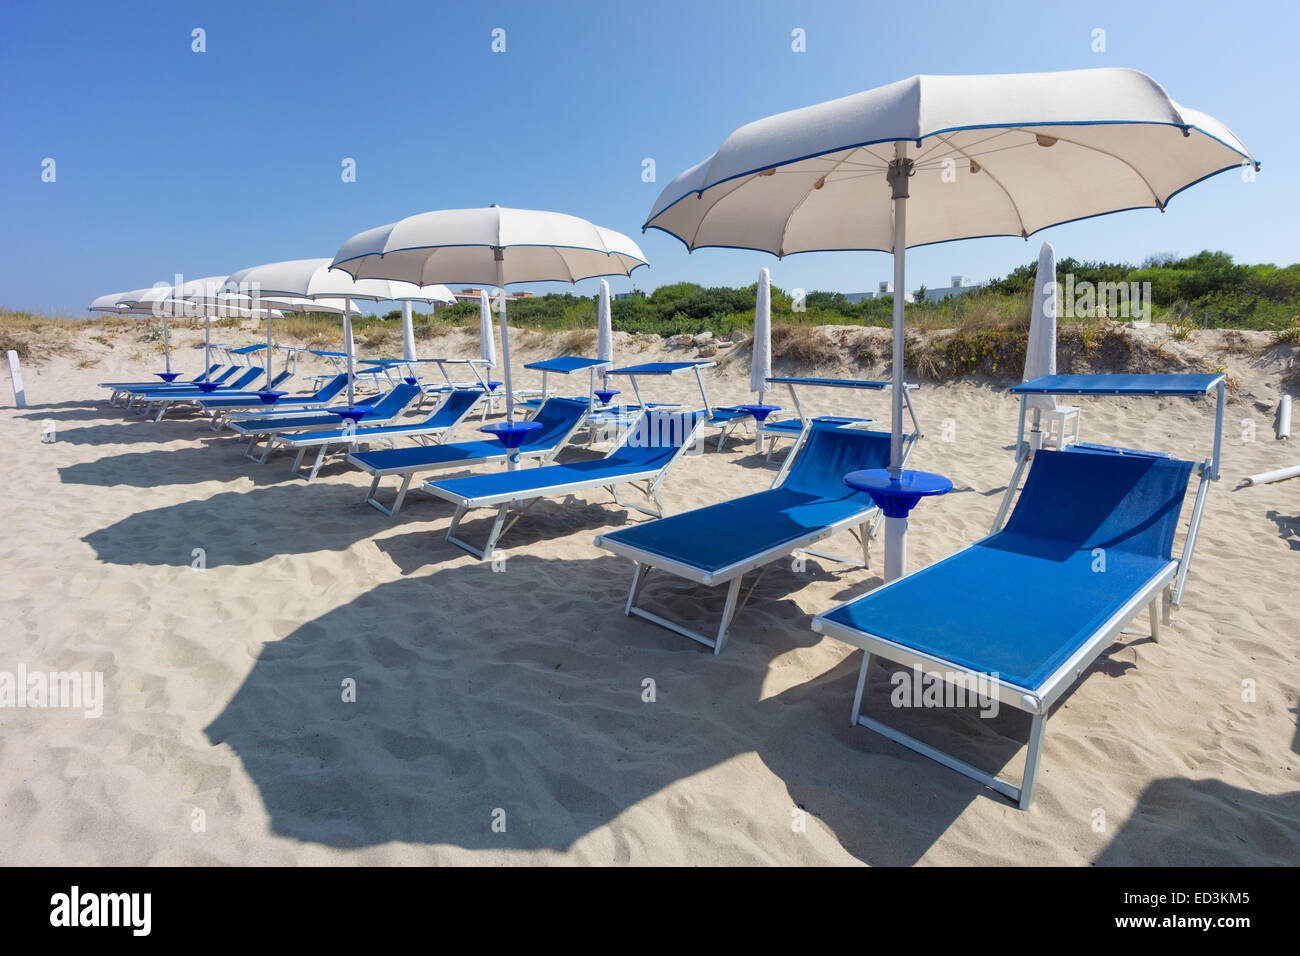 sunbeds and beach ubrellas in Gallipoli, Apulia, Italy - Stock Image